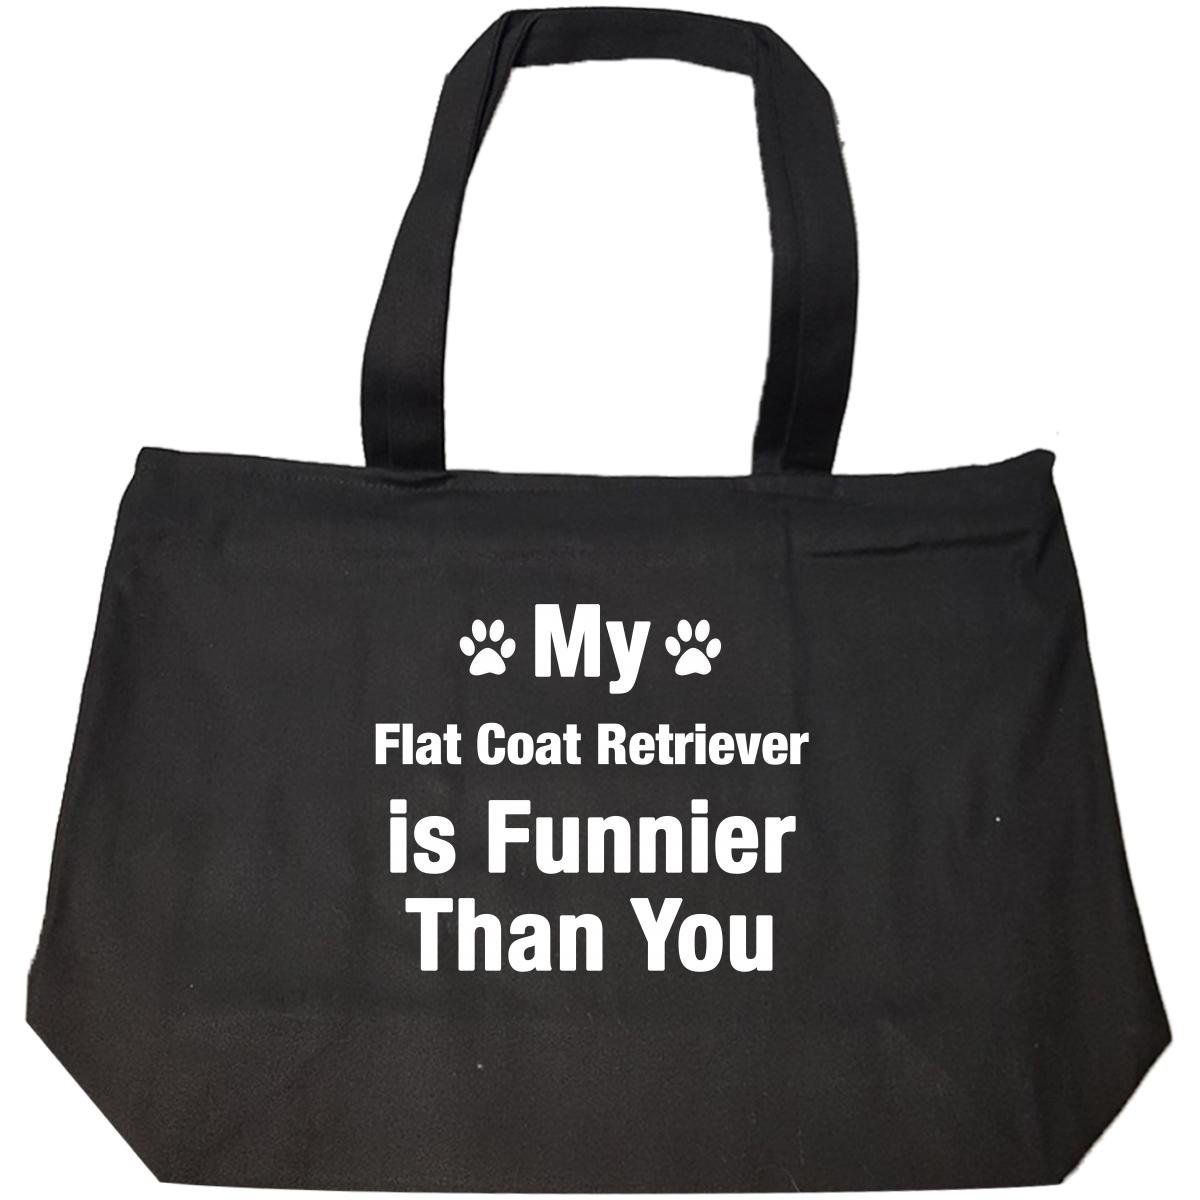 My Flat Coat Retriever Is Funnier Than You Funny Dog Breed Gift - Tote Bag With Zip